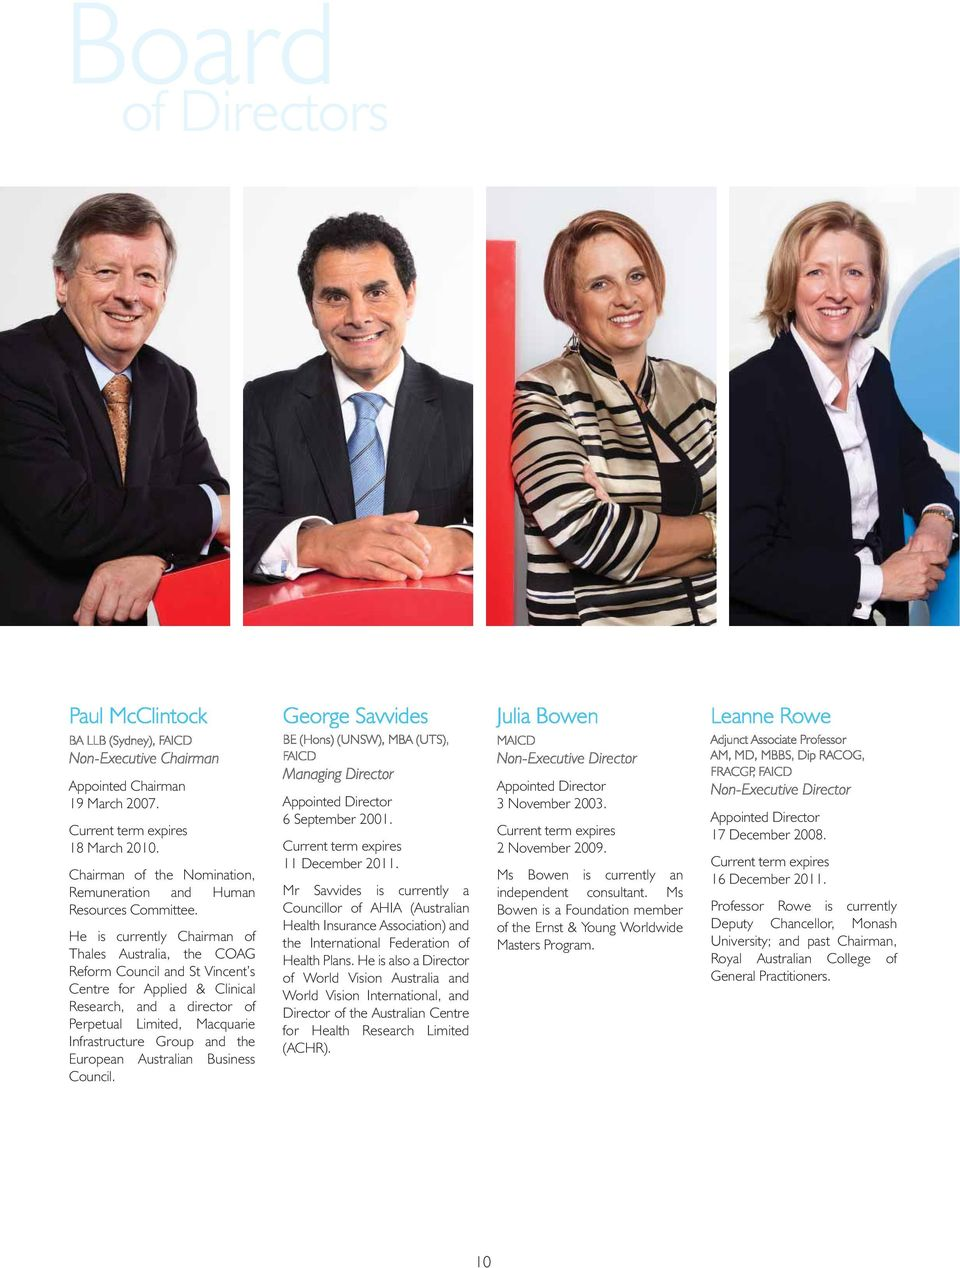 the European Australian Business Council. Appointed Director 6 September 2001. Current term expires 11 December 2011.